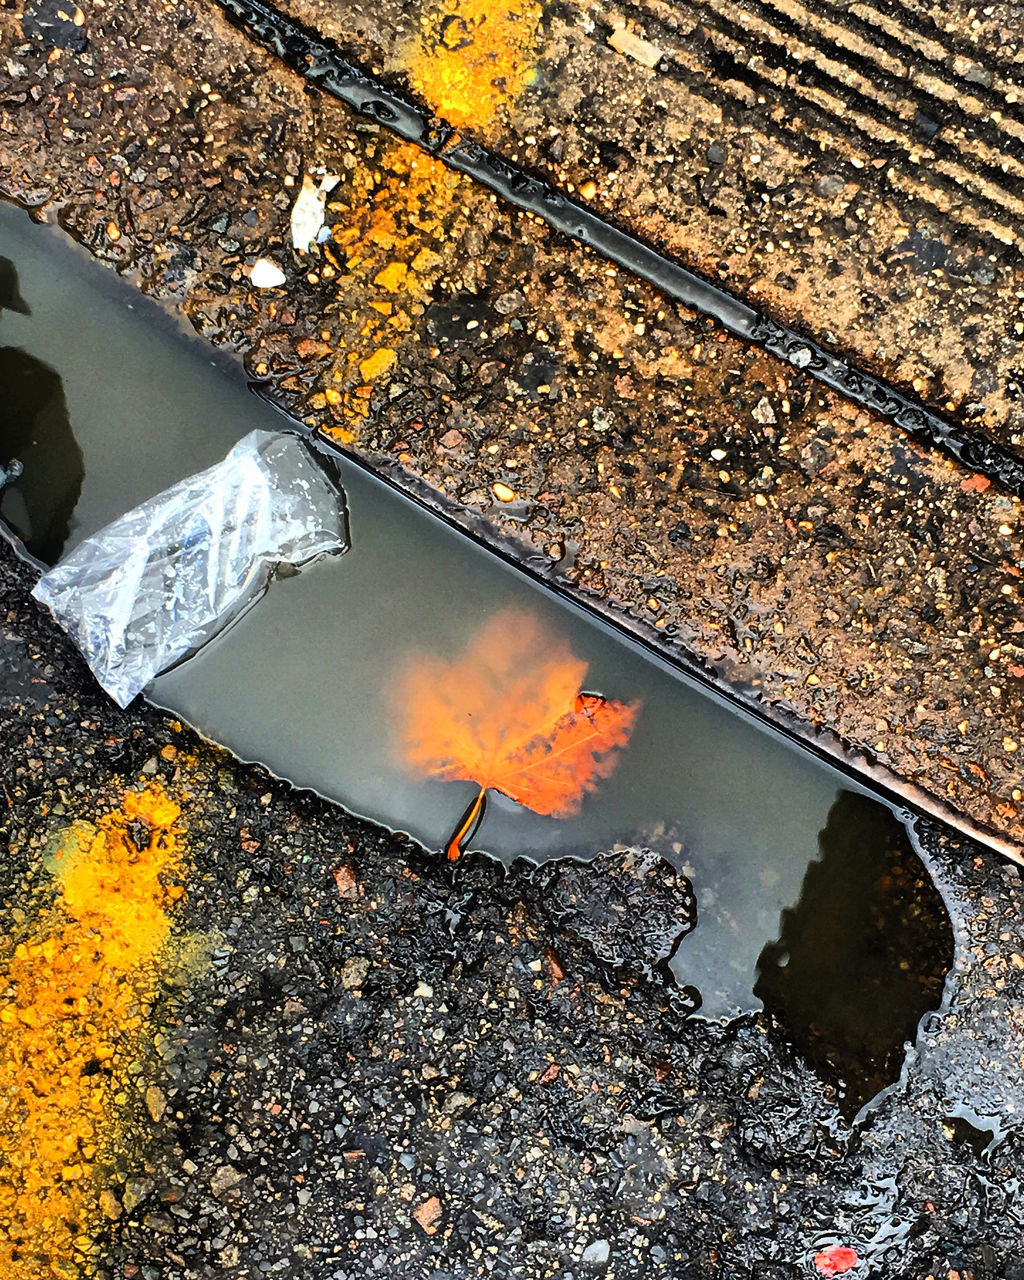 REFLECTION OF TREES IN PUDDLE